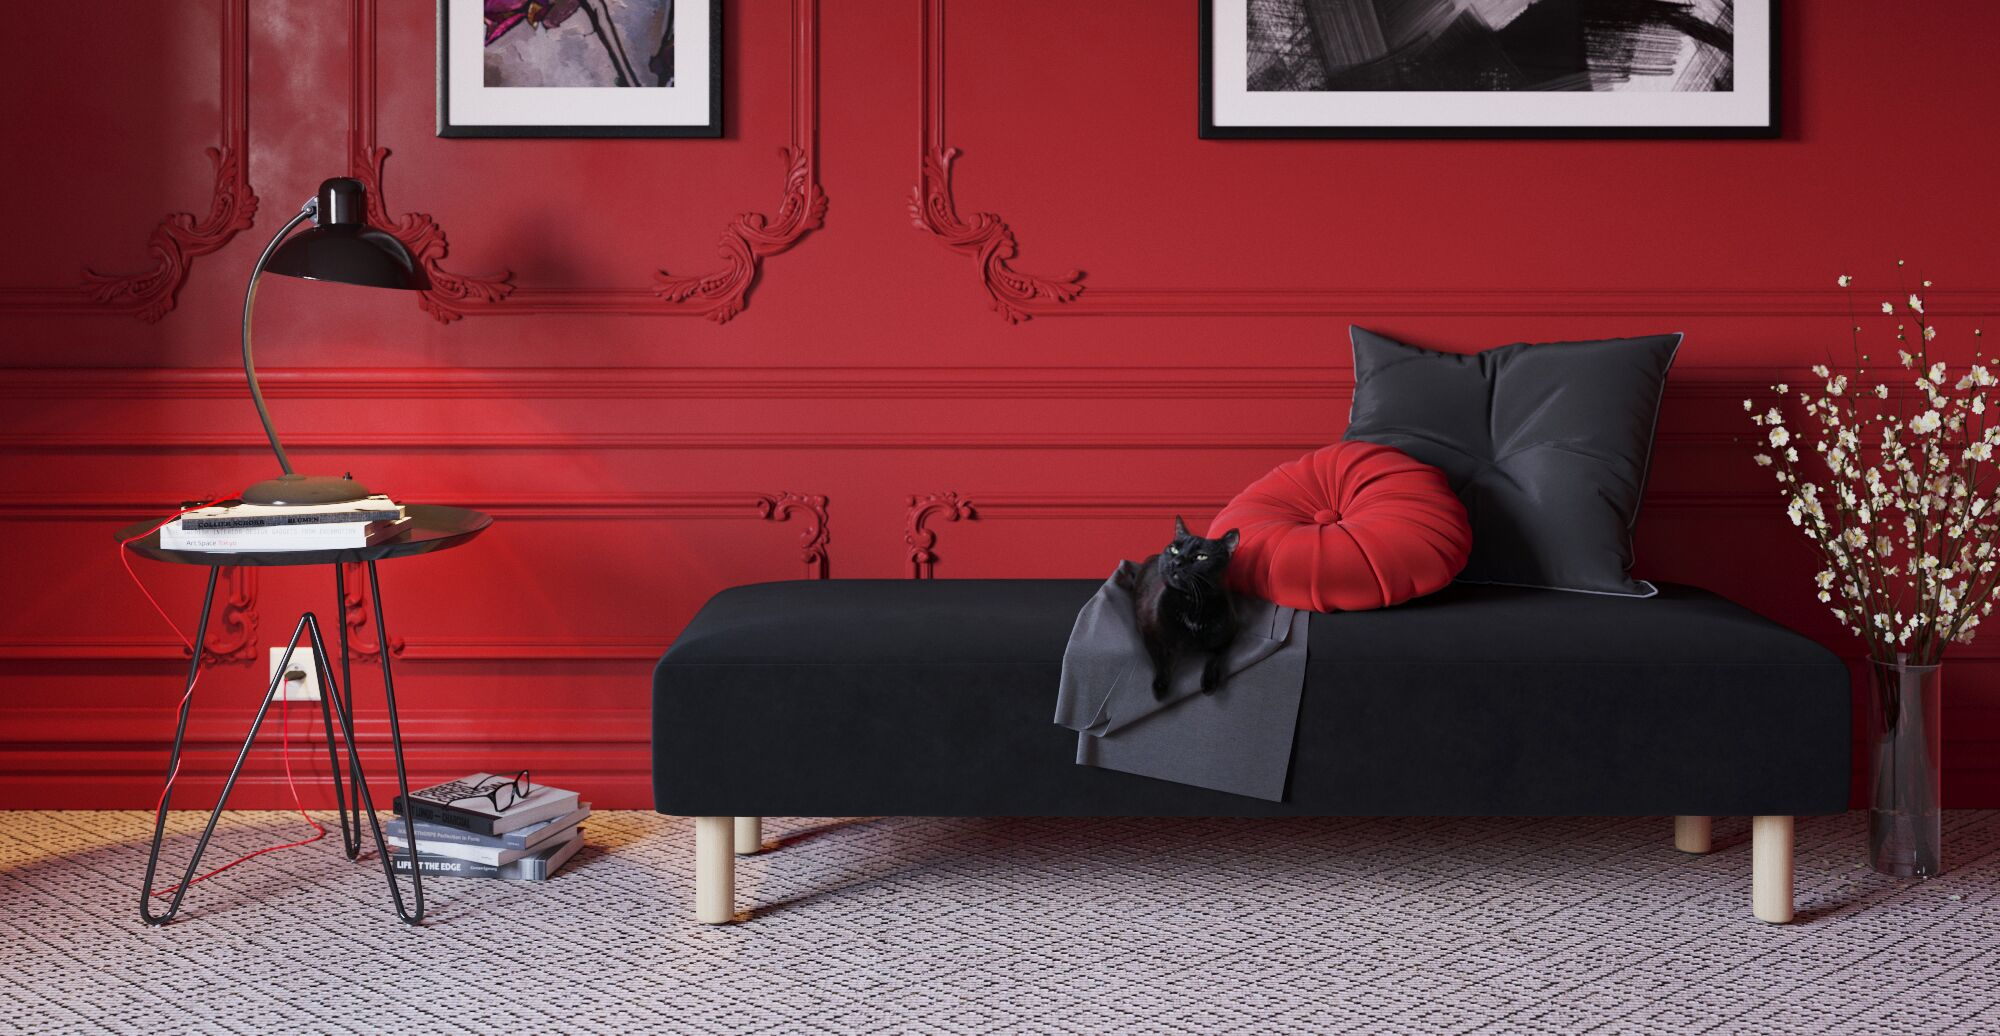 Glam style living in red and black